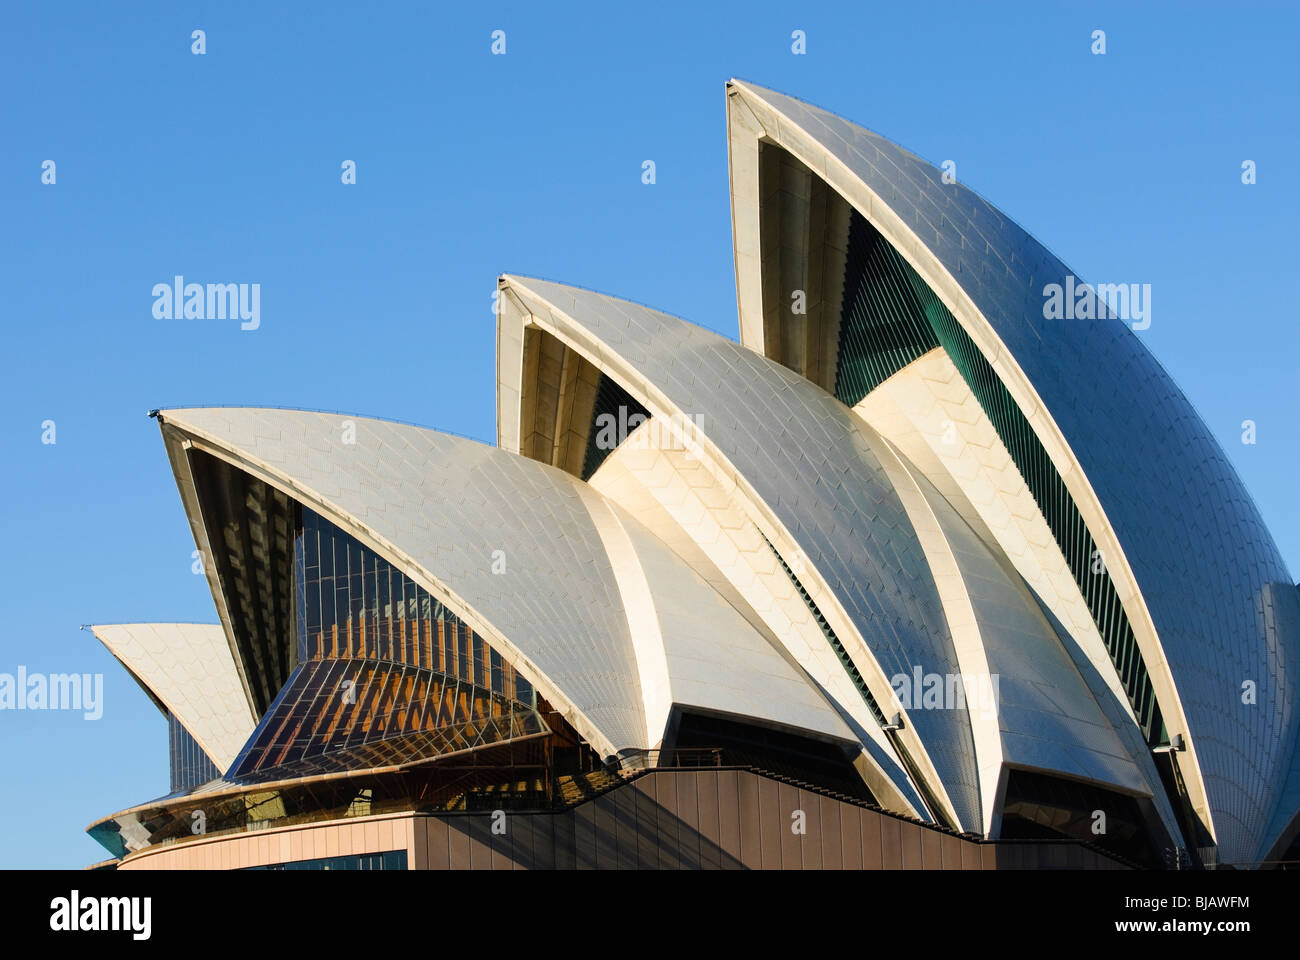 Curved Roof Stock Photos Amp Curved Roof Stock Images Alamy